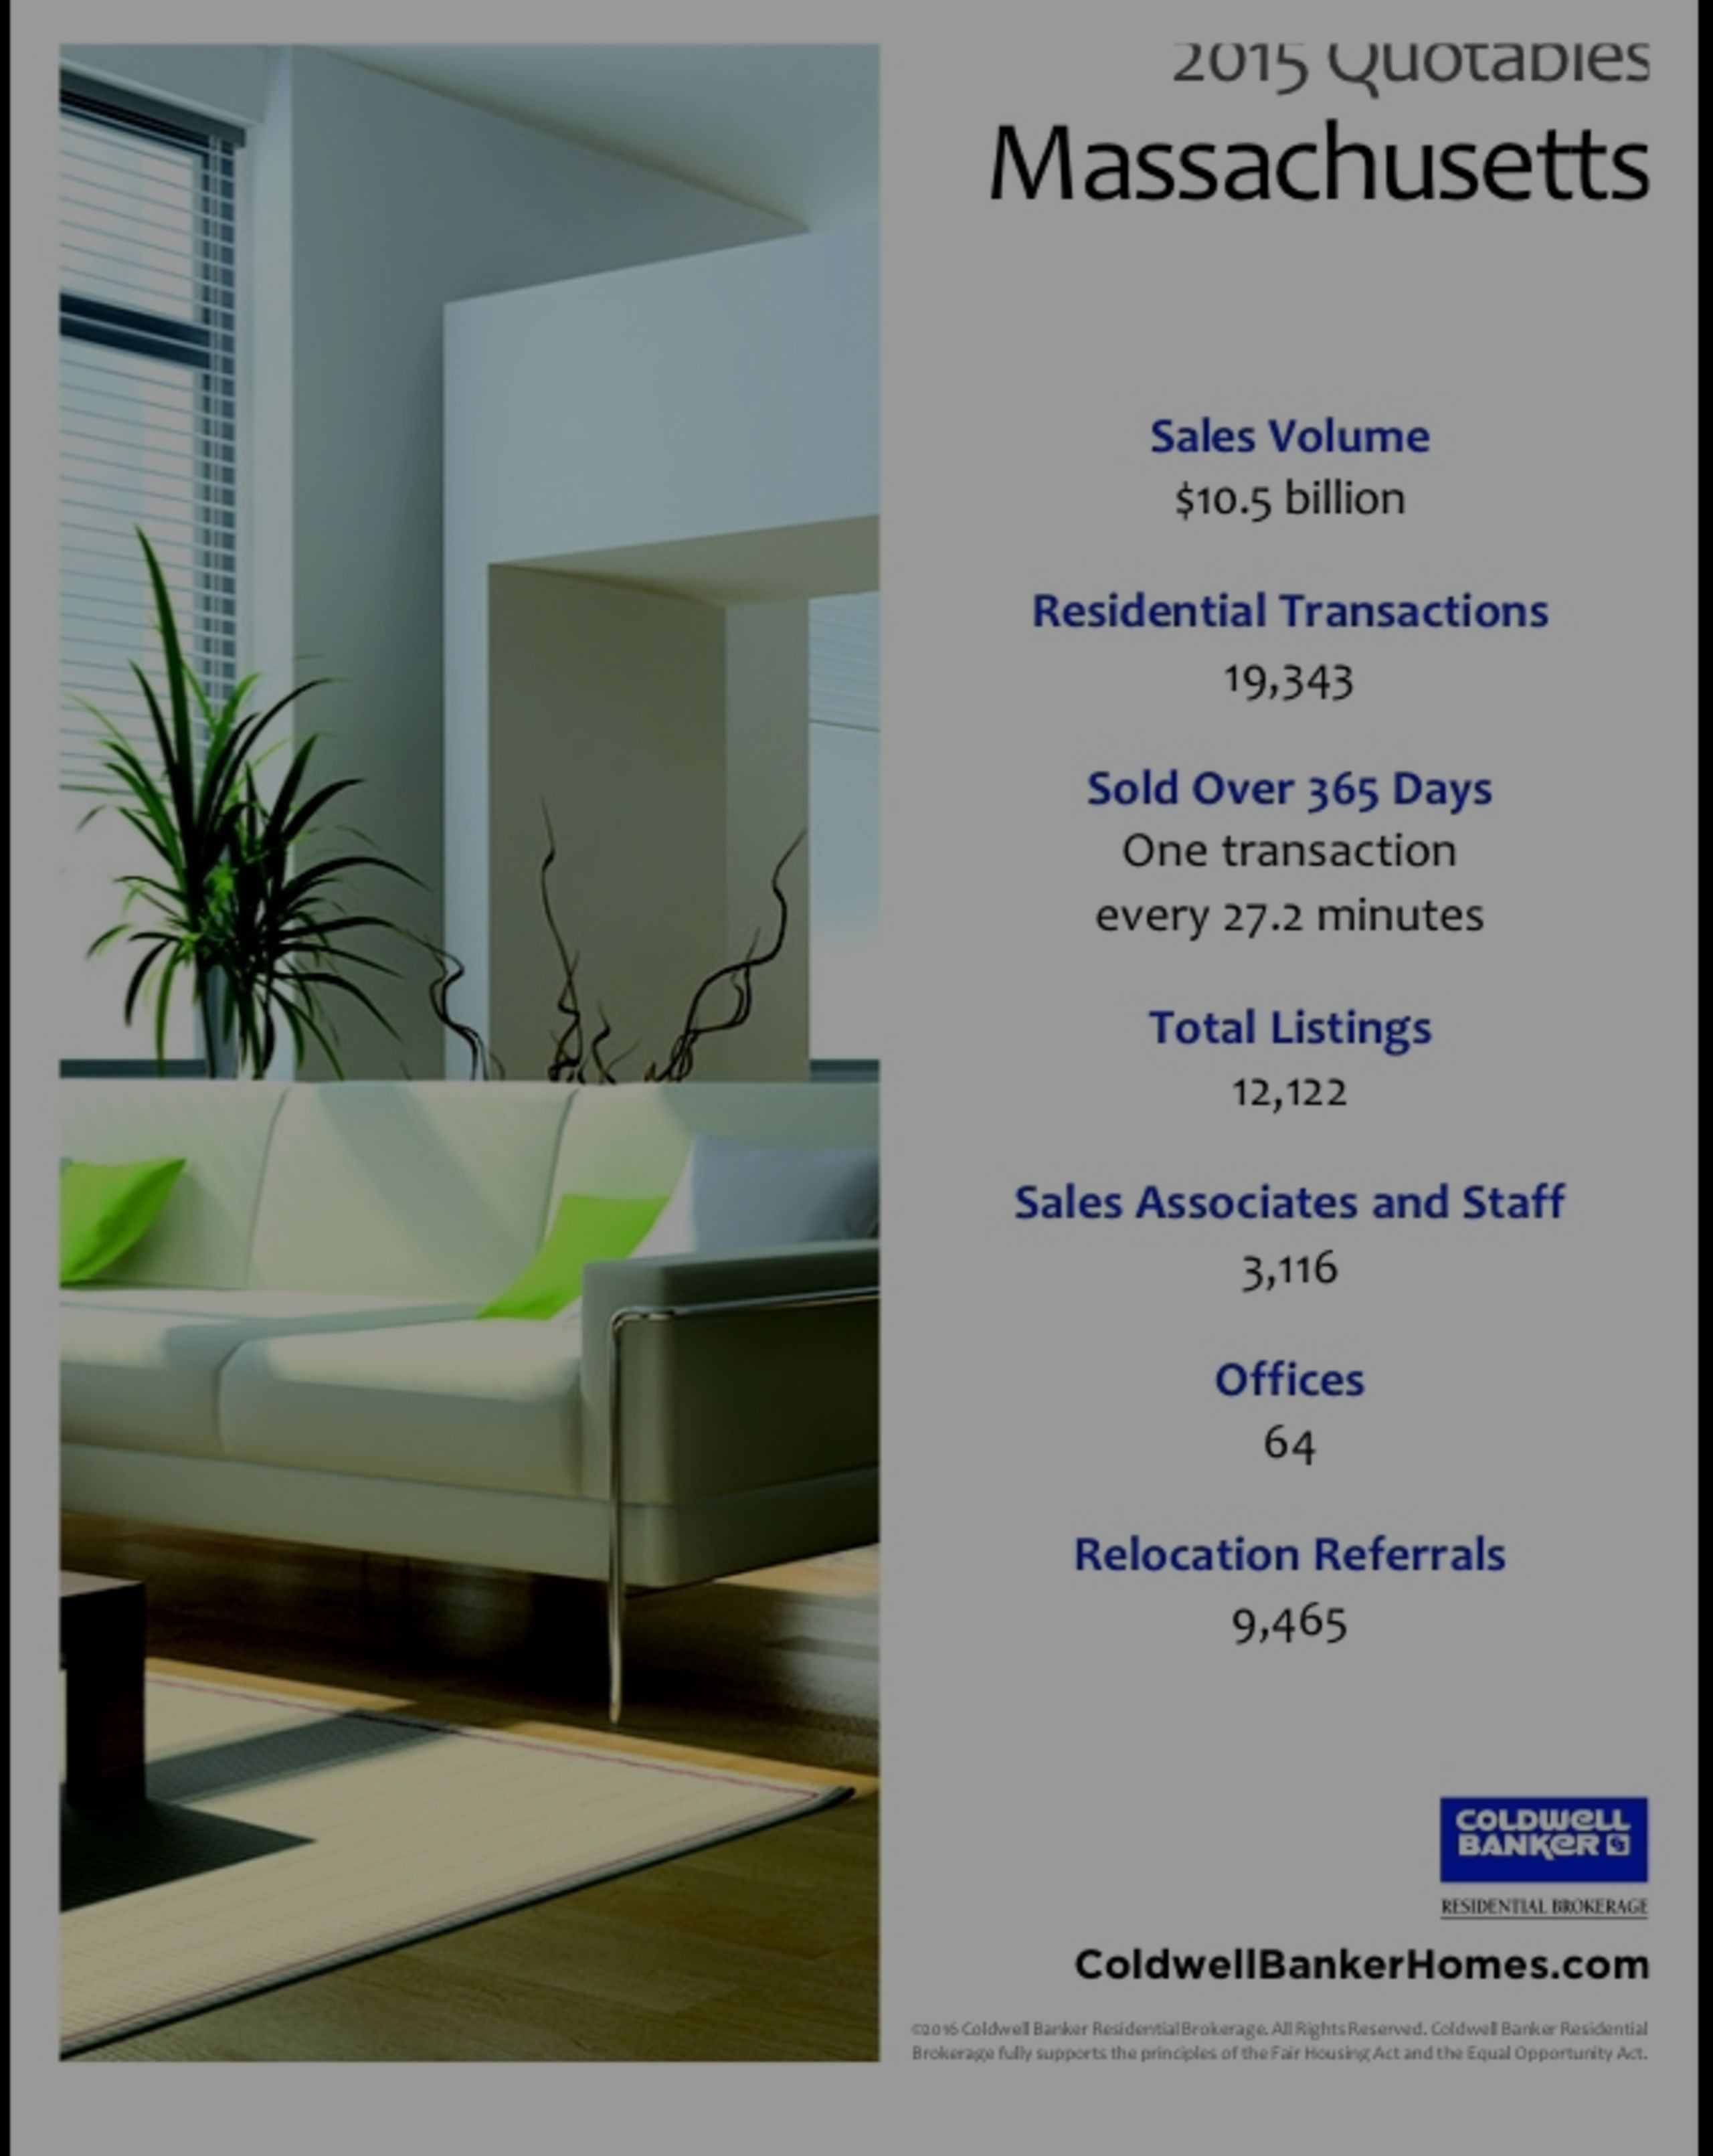 Another Reason to Use Coldwell Banker